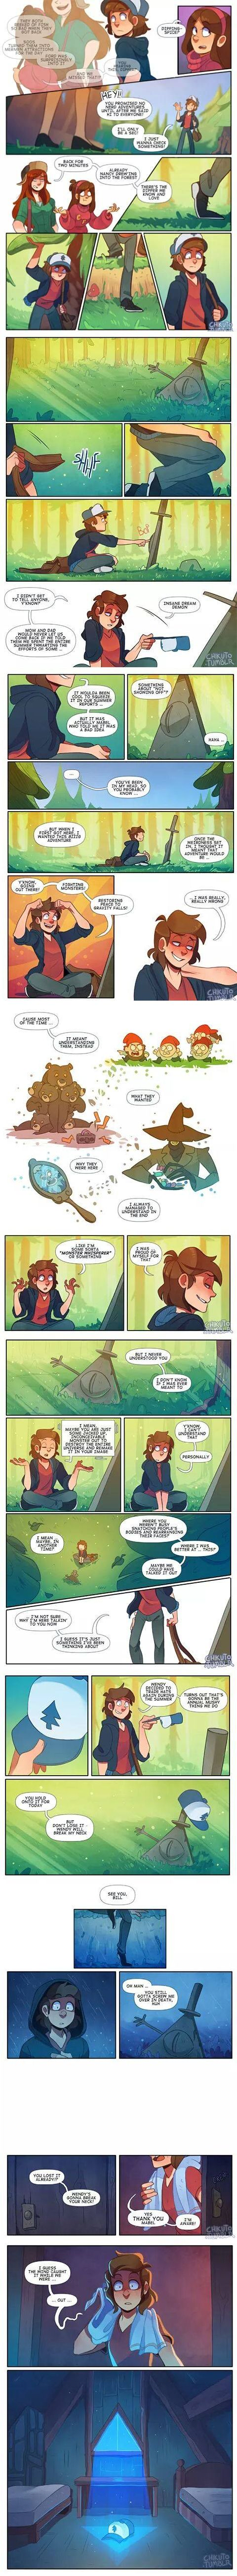 Gravity Falls. This is so AWESOME!!!!!!!! This story, it's soooo epic. And………BILL IS BACK BABY!!!!!!!!!!'